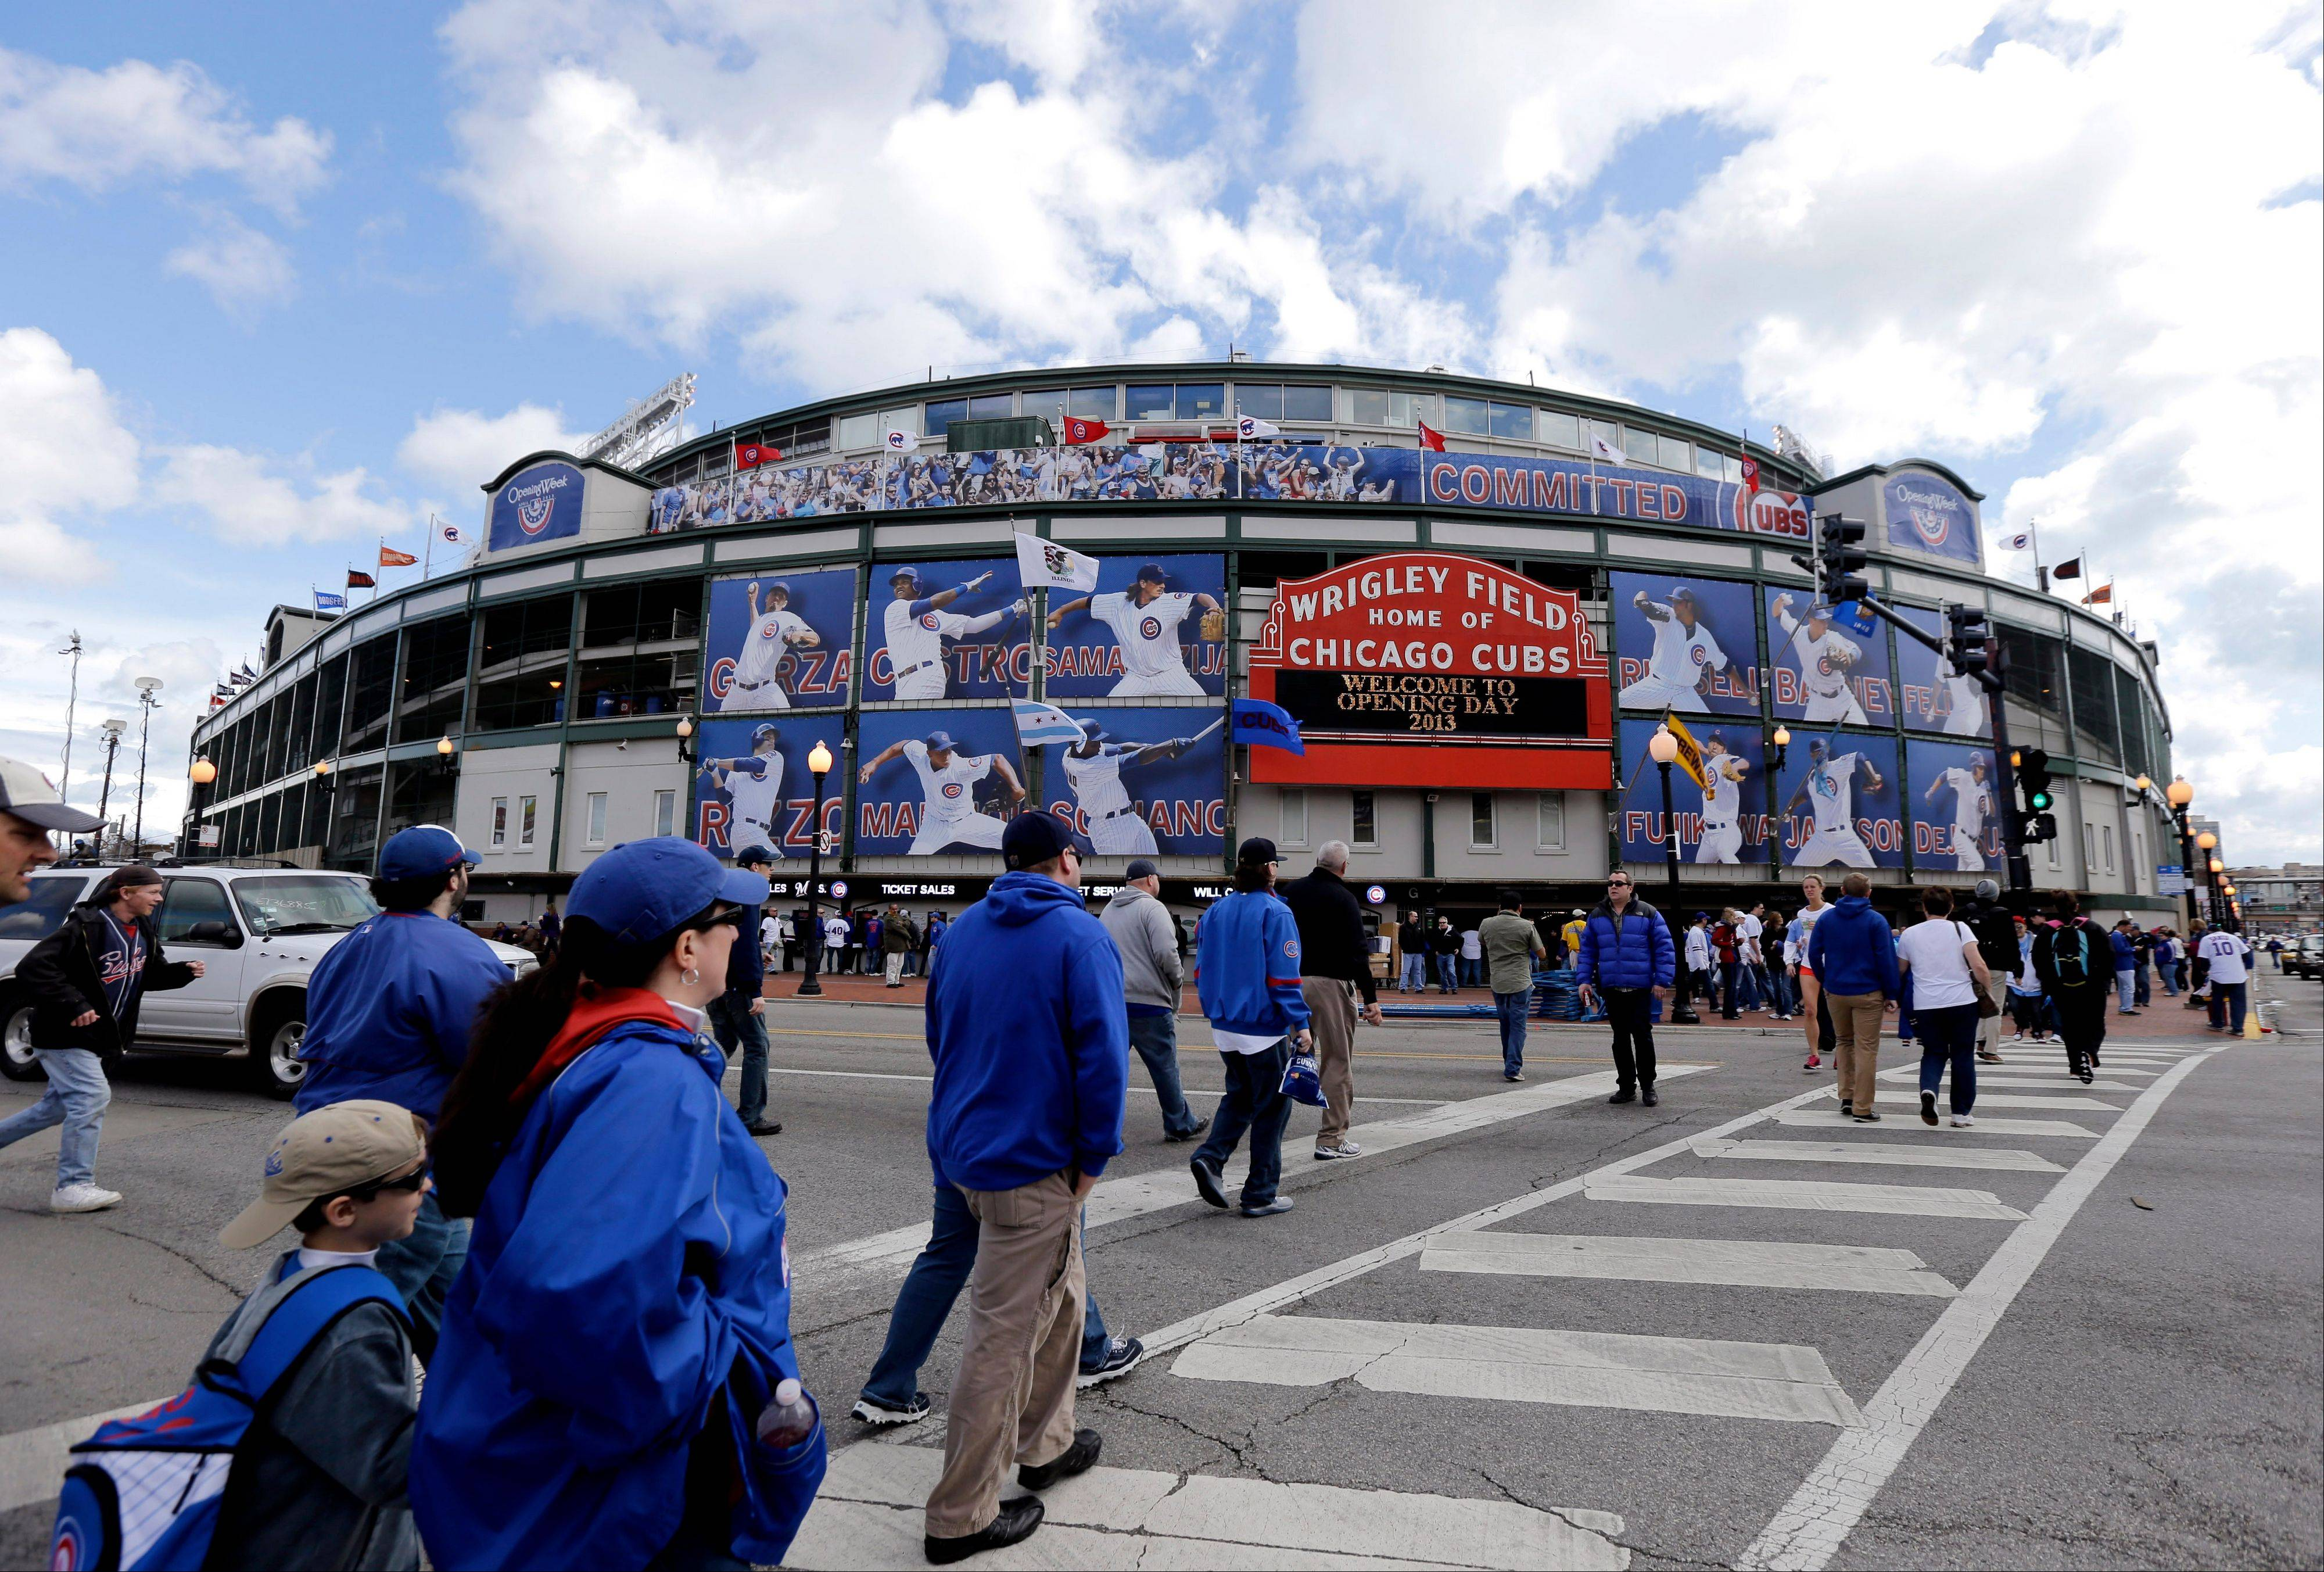 Fans who nearly need to take out a second mortgage to see a game at Wrigley Field should feel free to boo any Cubs player they feel deserves it, according to Daily Herald columnist Mike Imrem.